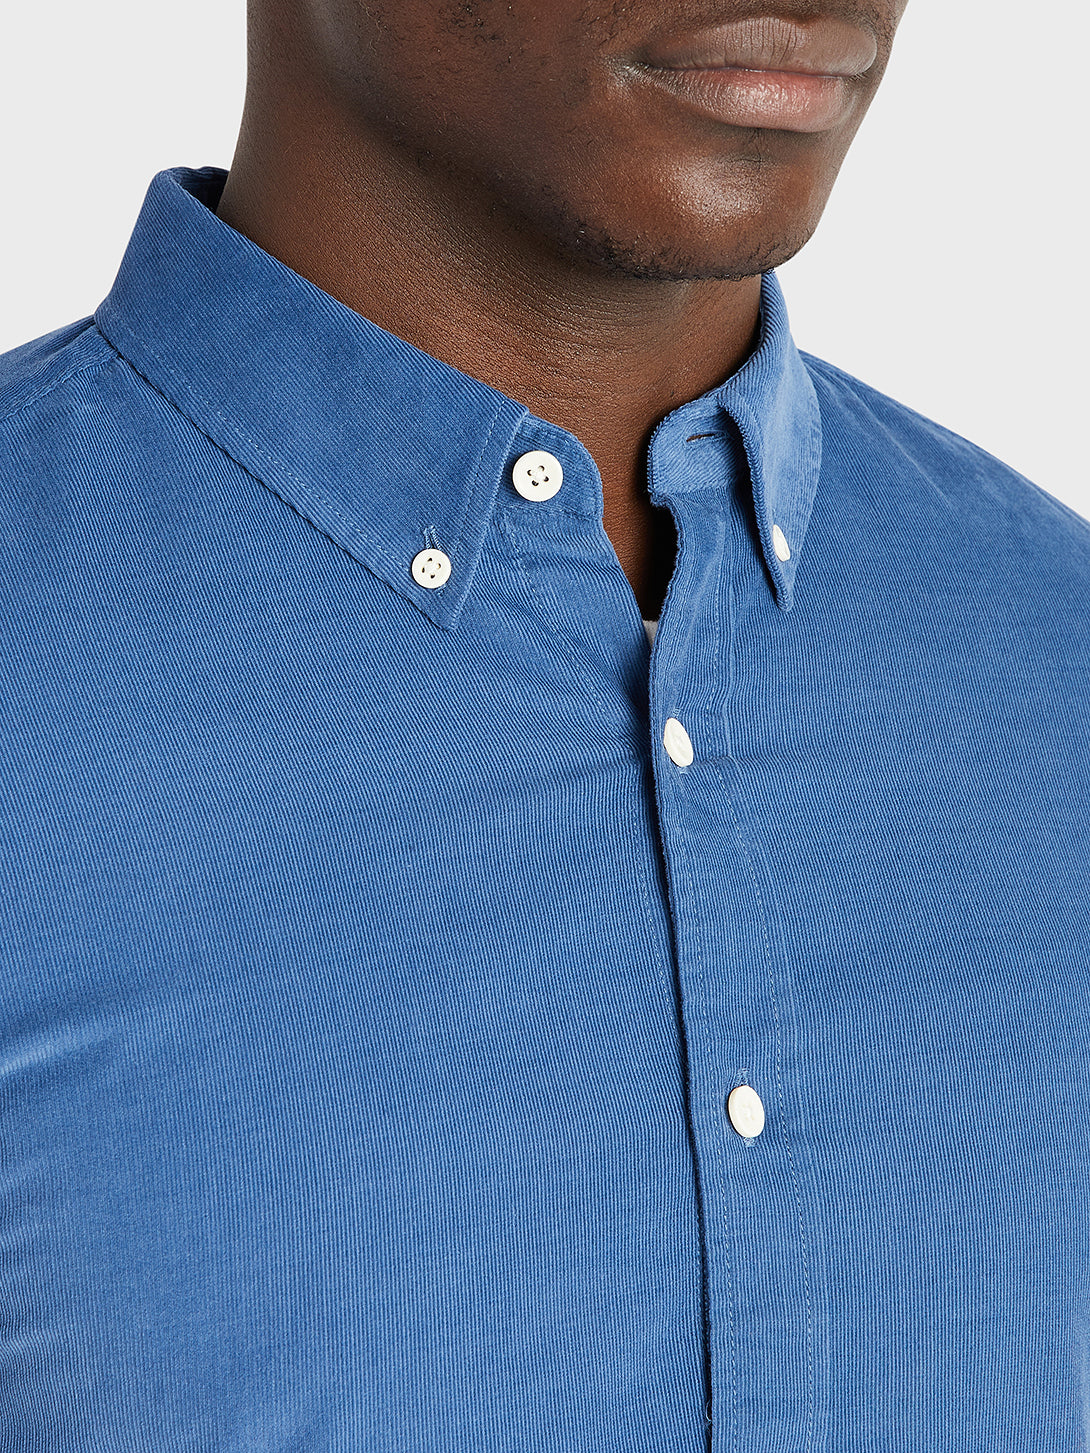 ONS Clothing Men's FULTON CORD SHIRT in COBALT BLUE